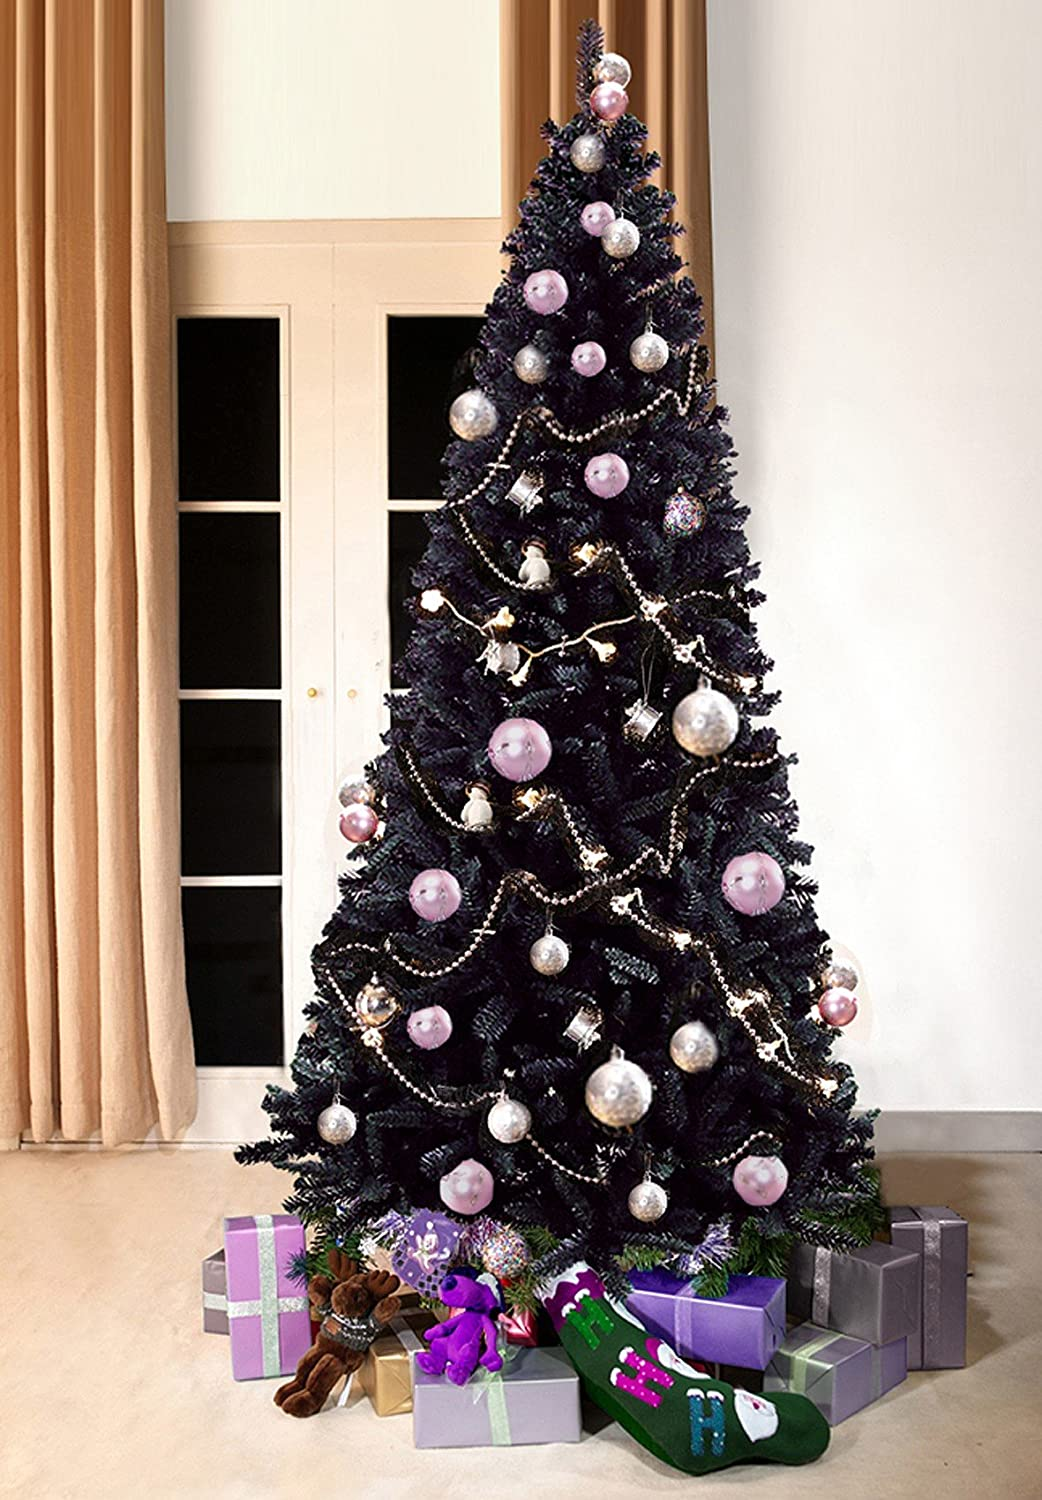 modern slimline artificial christmas trees black bergen fir 7 ft tall 210cm slimline 34 ft wide modern stylish contemporary quality xmas trees - Black Christmas Tree With Purple Decorations